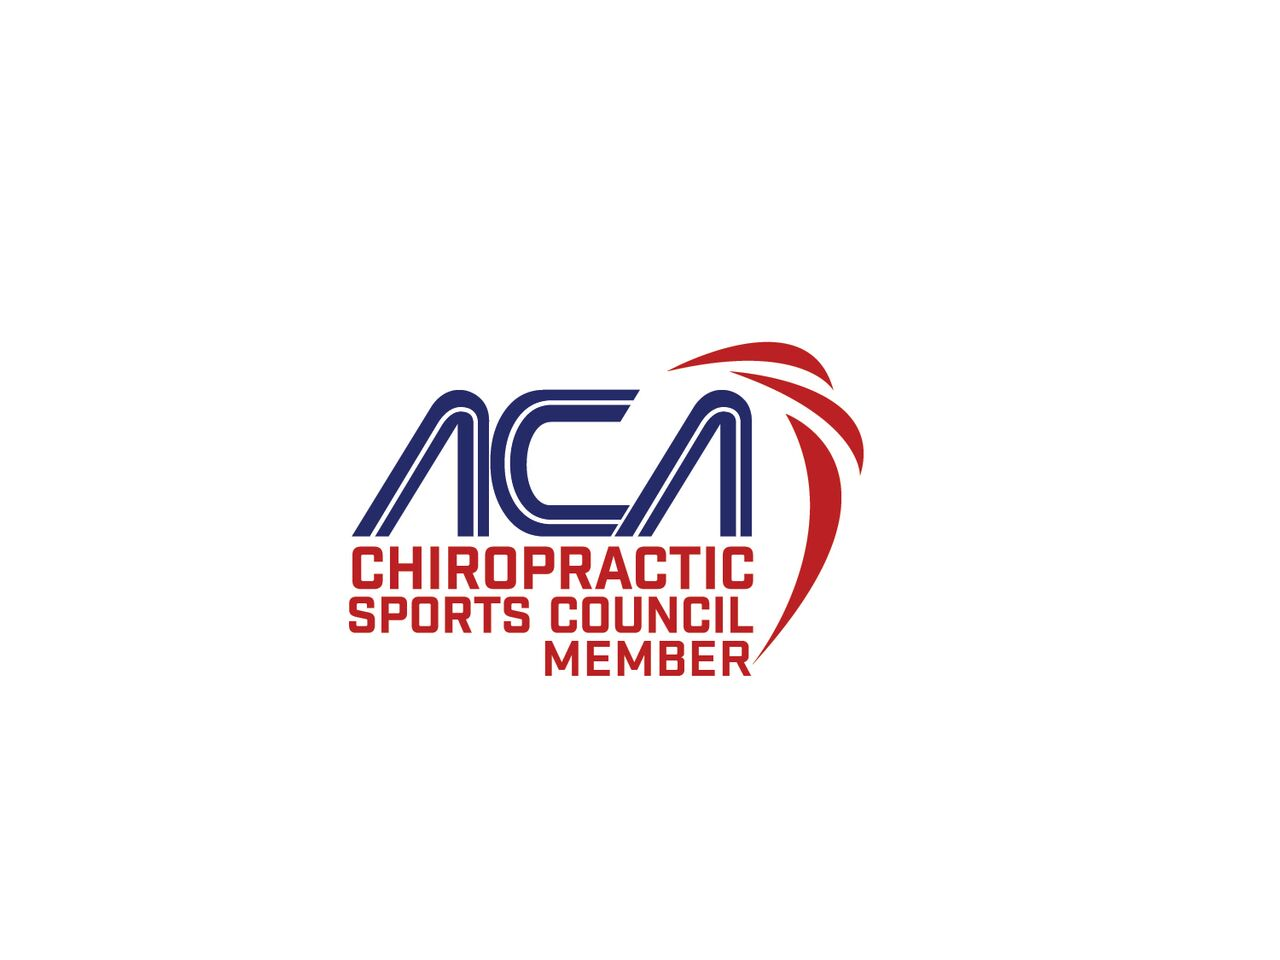 ACA chiropractic sports council